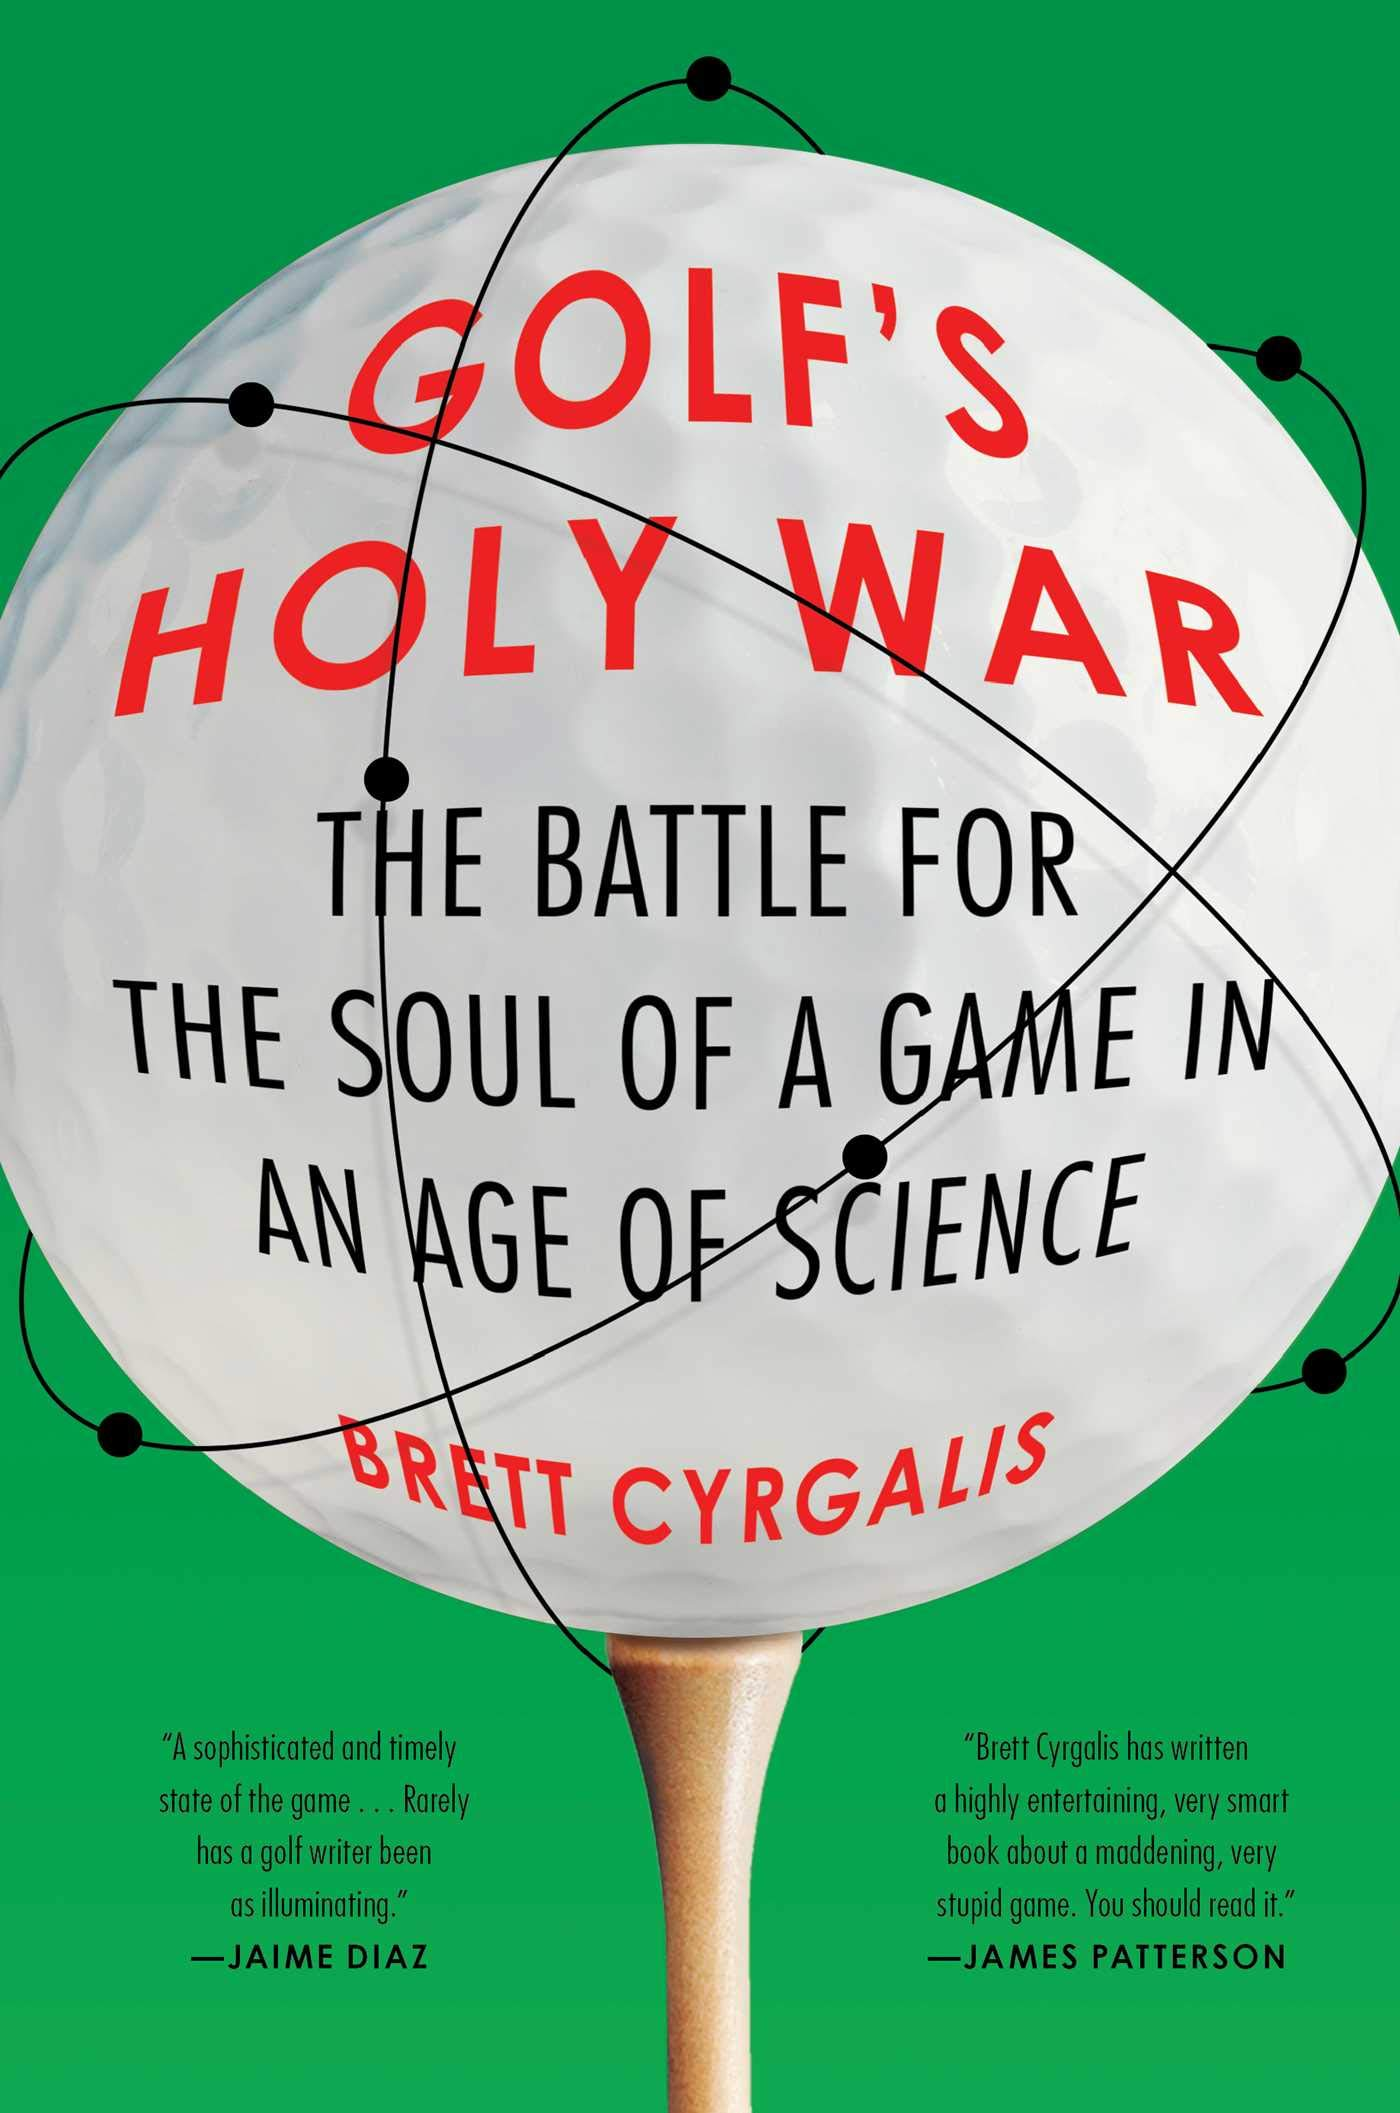 712xKXofZxL - Golf's Holy War: The Battle for the Soul of a Game in an Age of Science